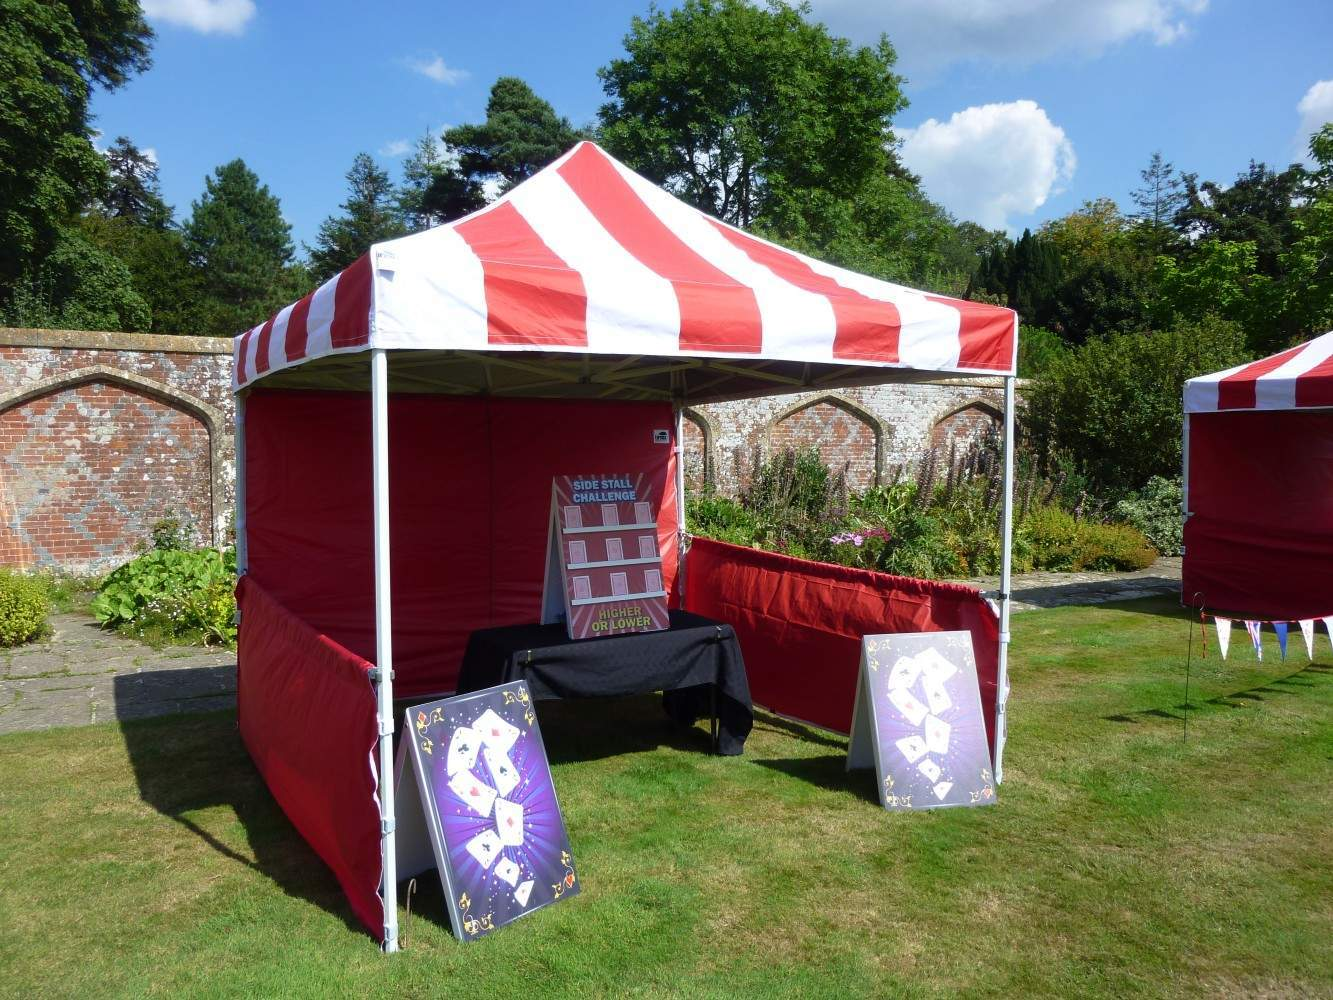 Higher Or Lower Traditional Side Stall Games Hire London